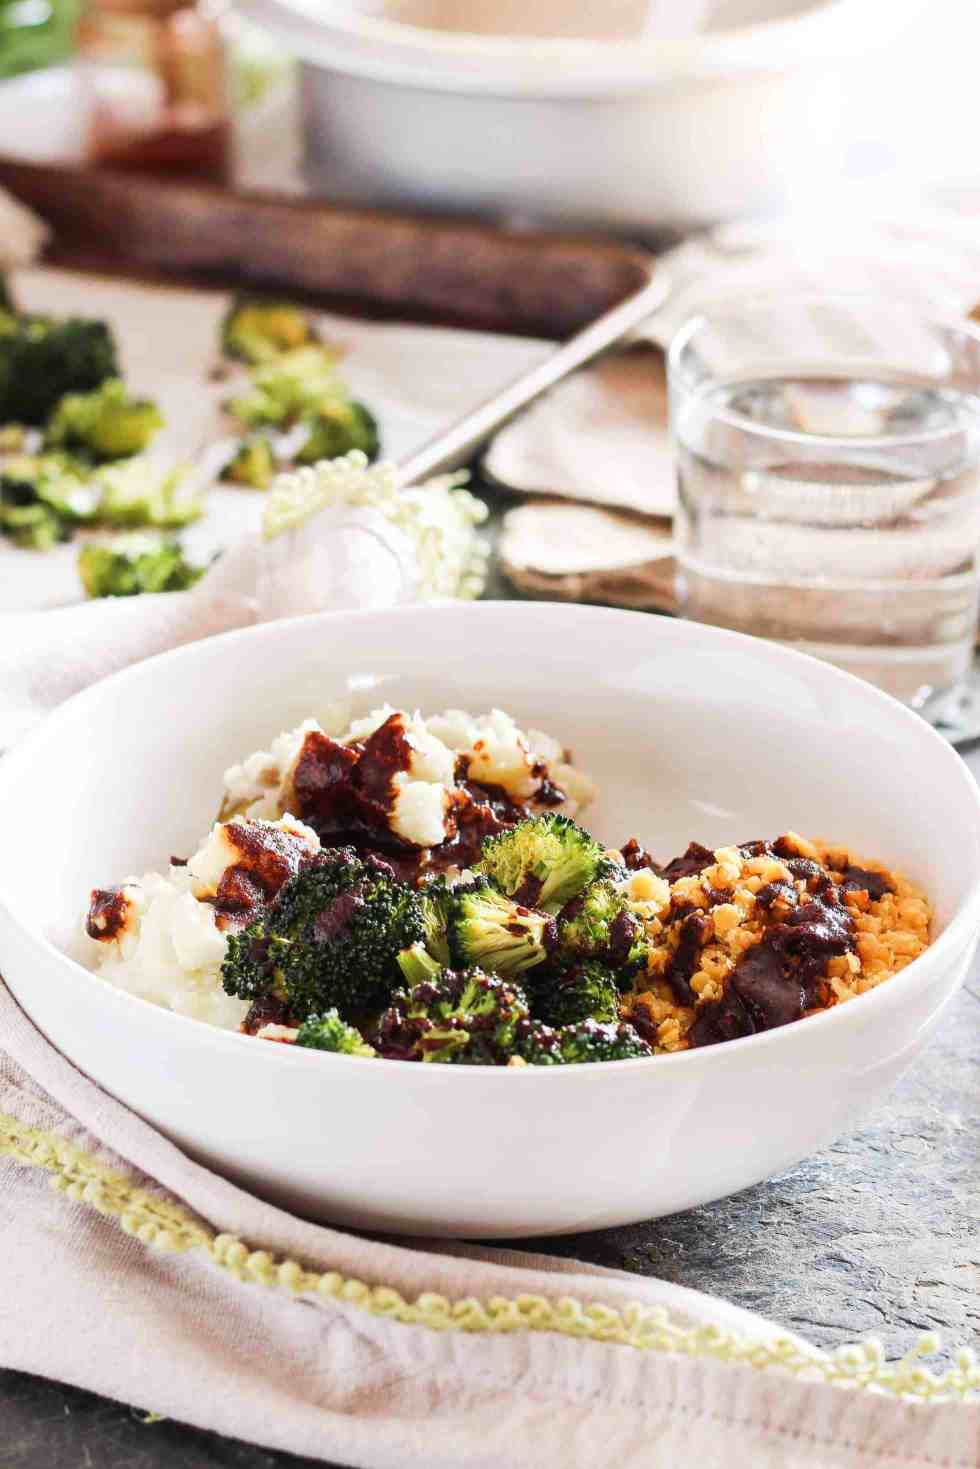 Mashed Potato Thanksgiving Leftovers become BBQ lentil bowls in white bowl with broccoli.